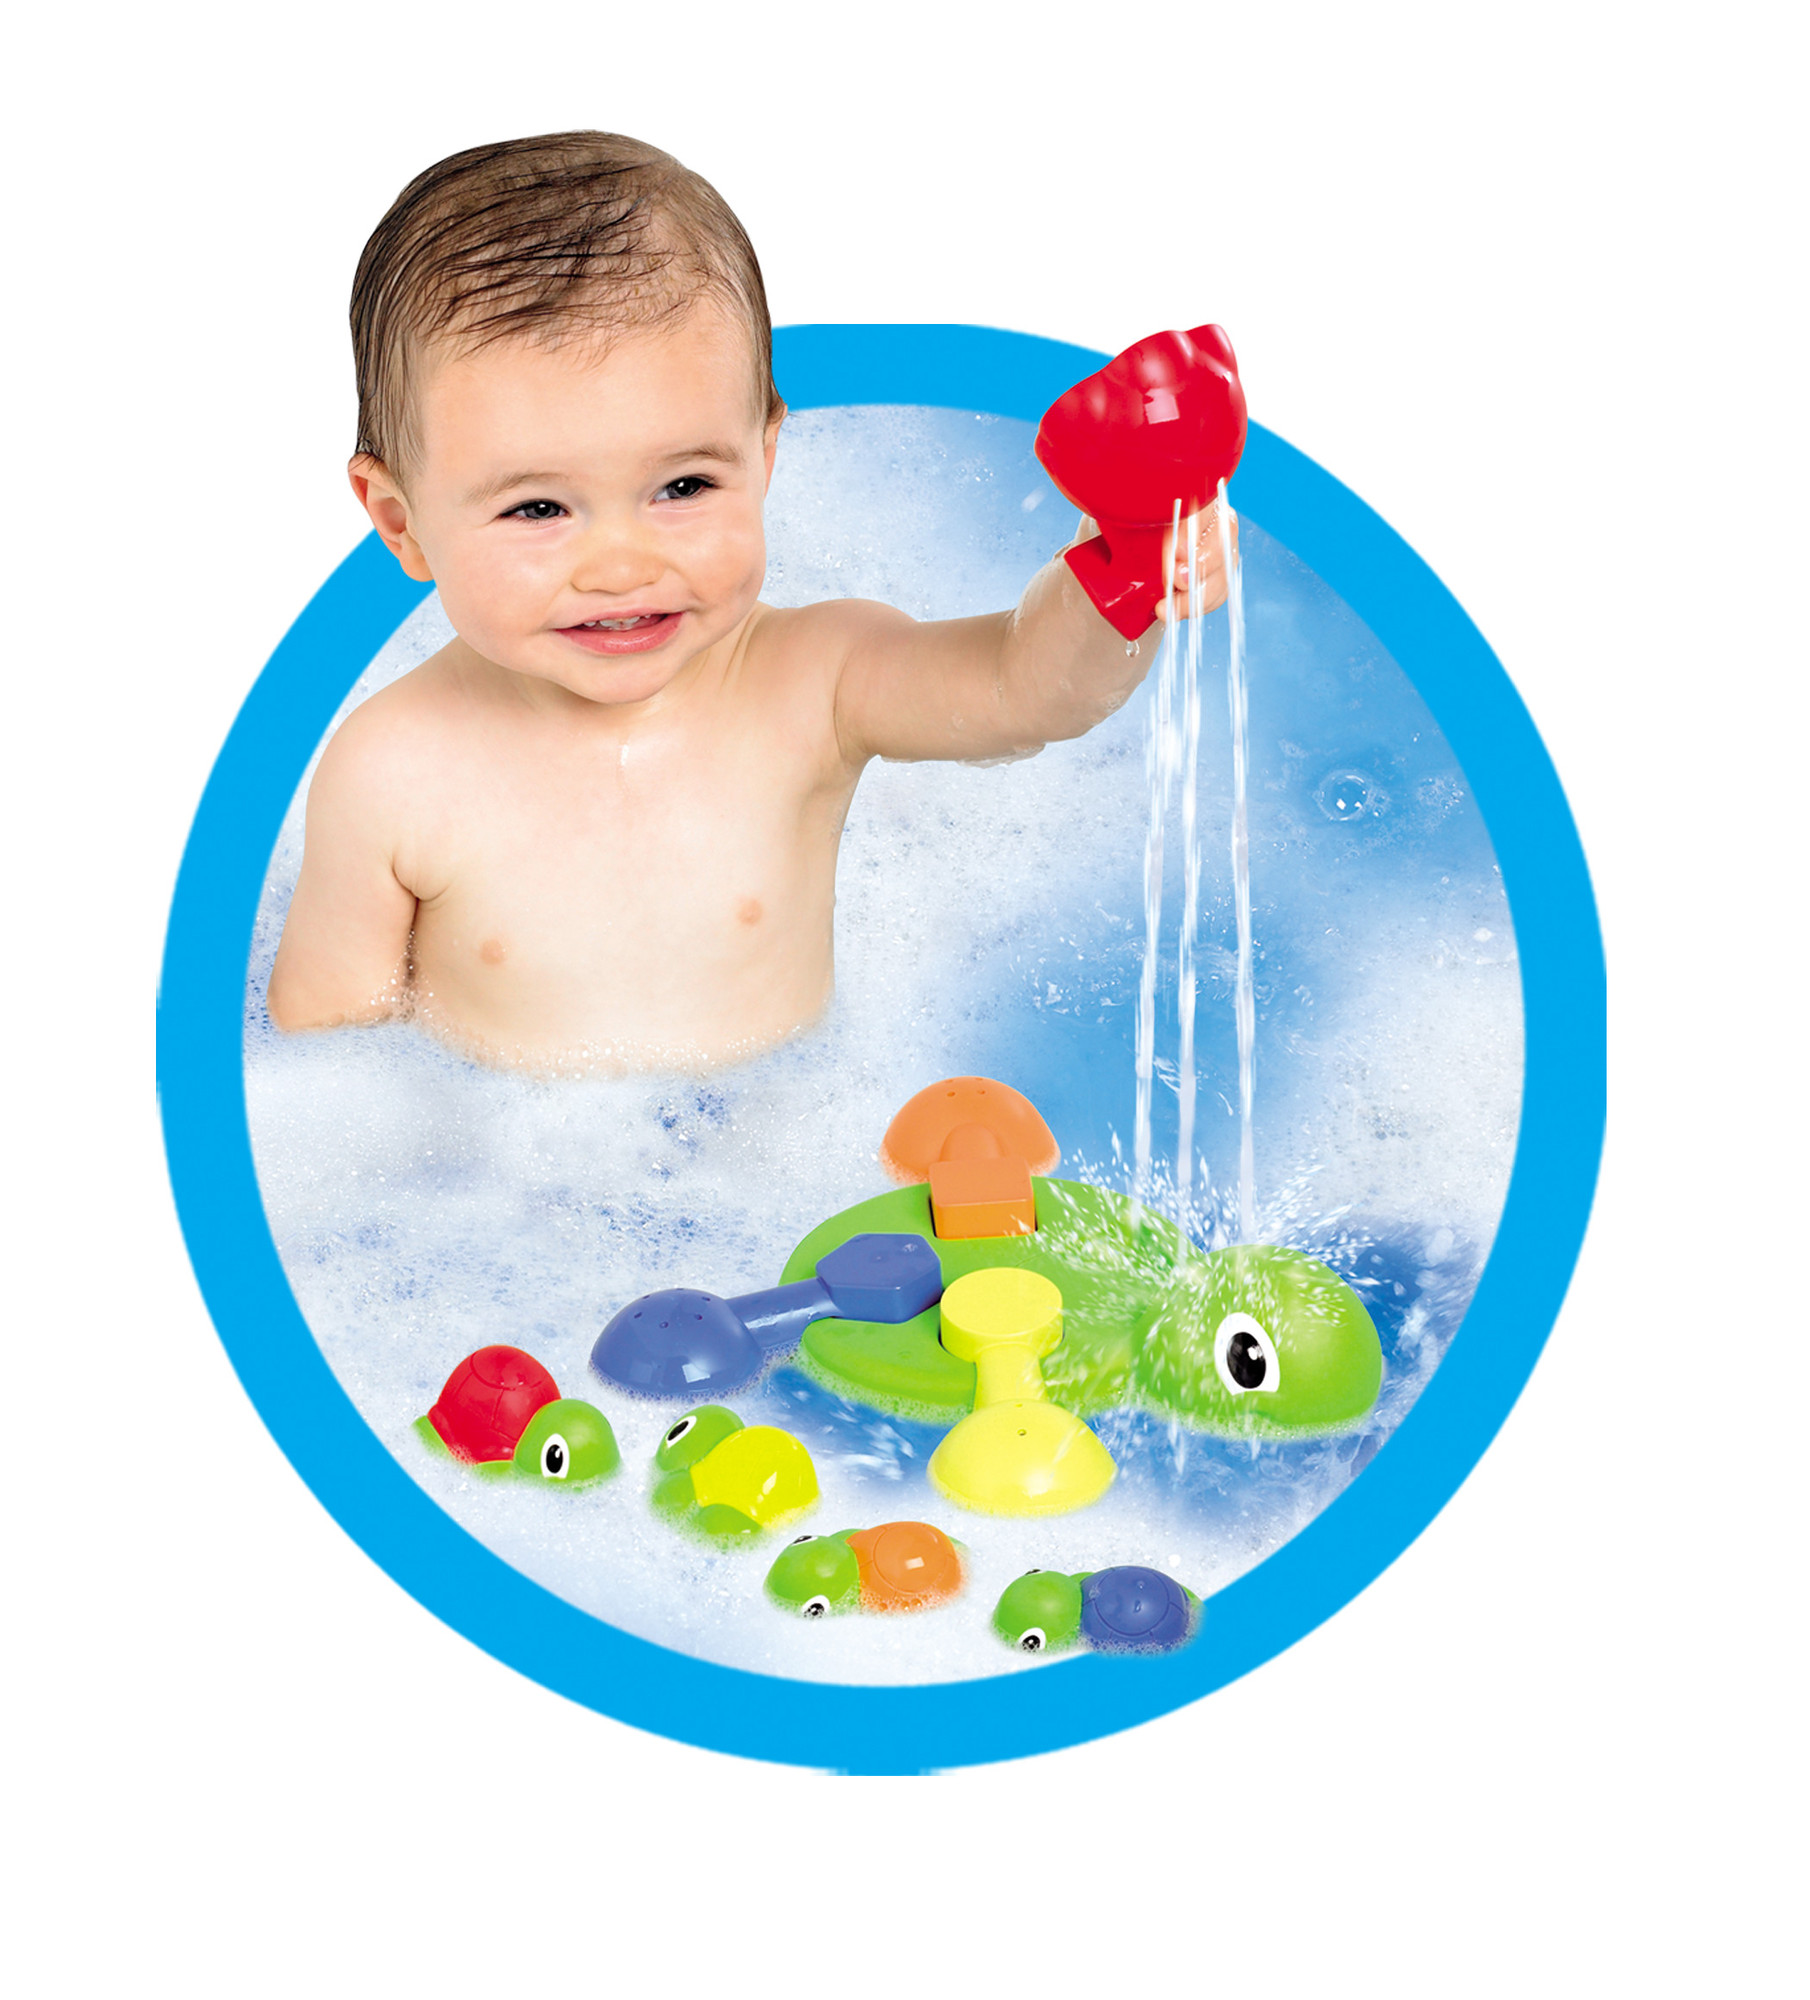 E72097 TOMY Turtle Tots Bathtime Fun Toy with Pour Cup & Squirters ...